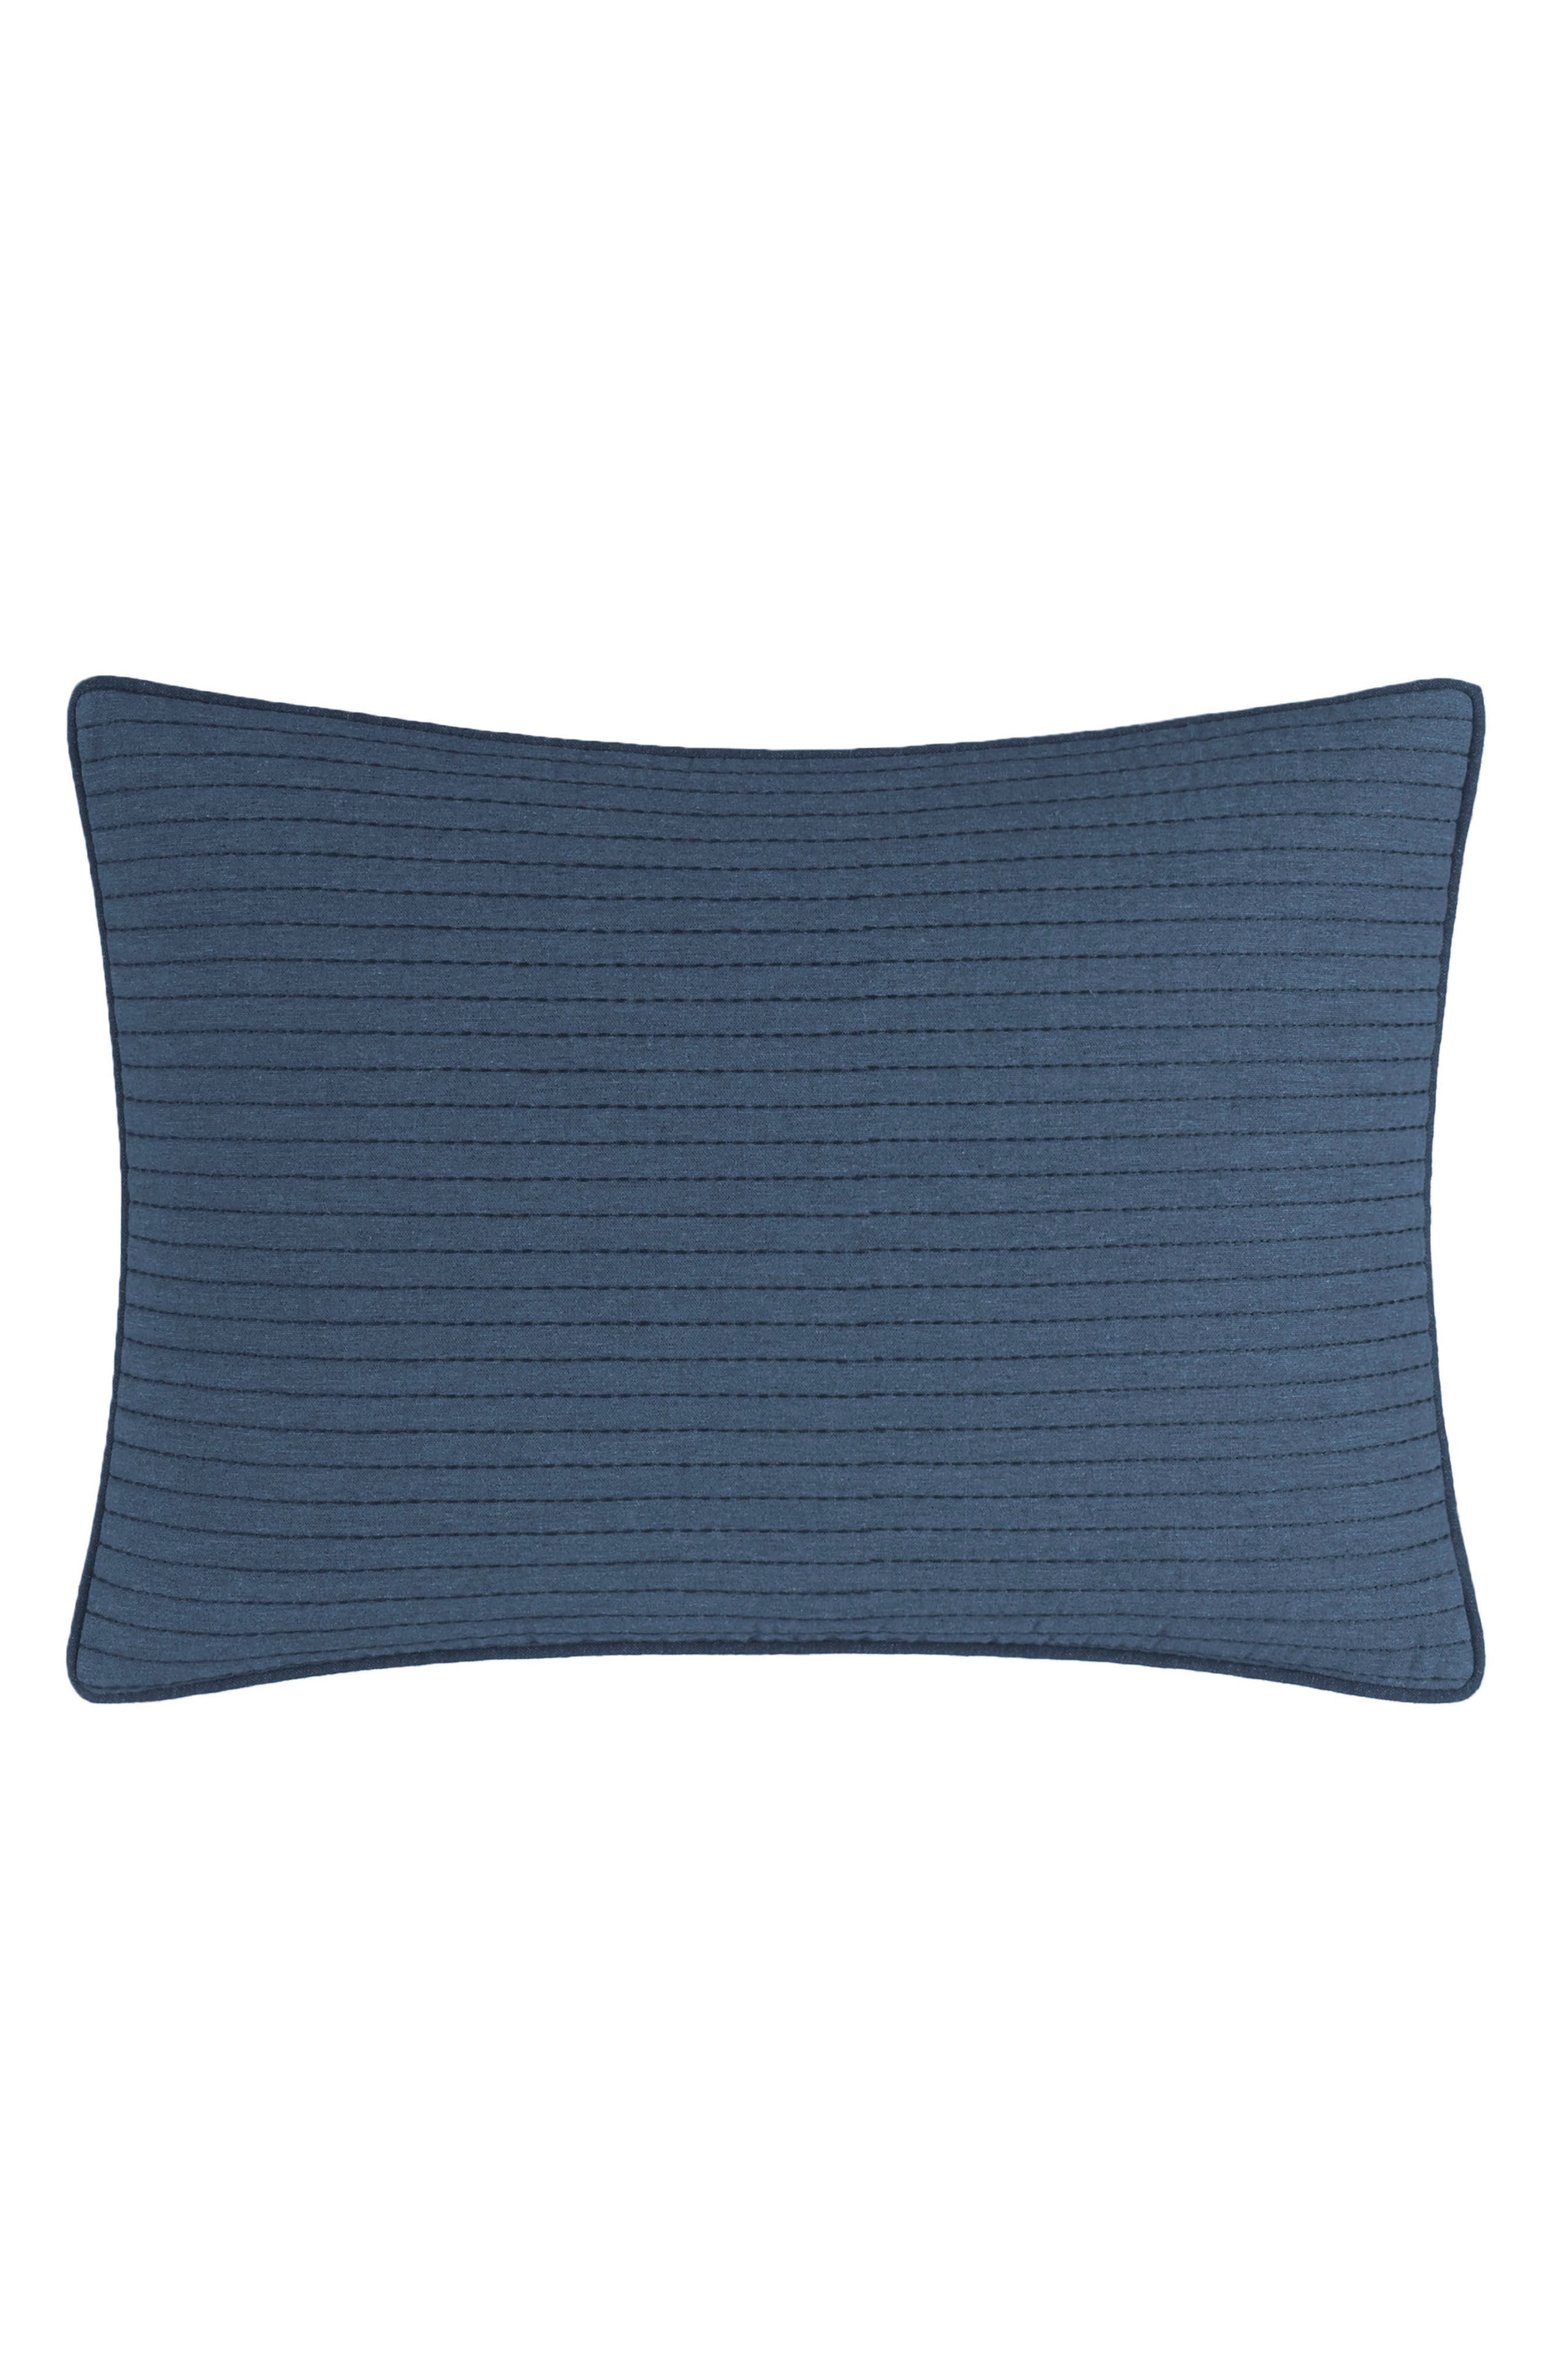 Lockridge Quilted Accent Pillow,                             Main thumbnail 1, color,                             DARK NAVY